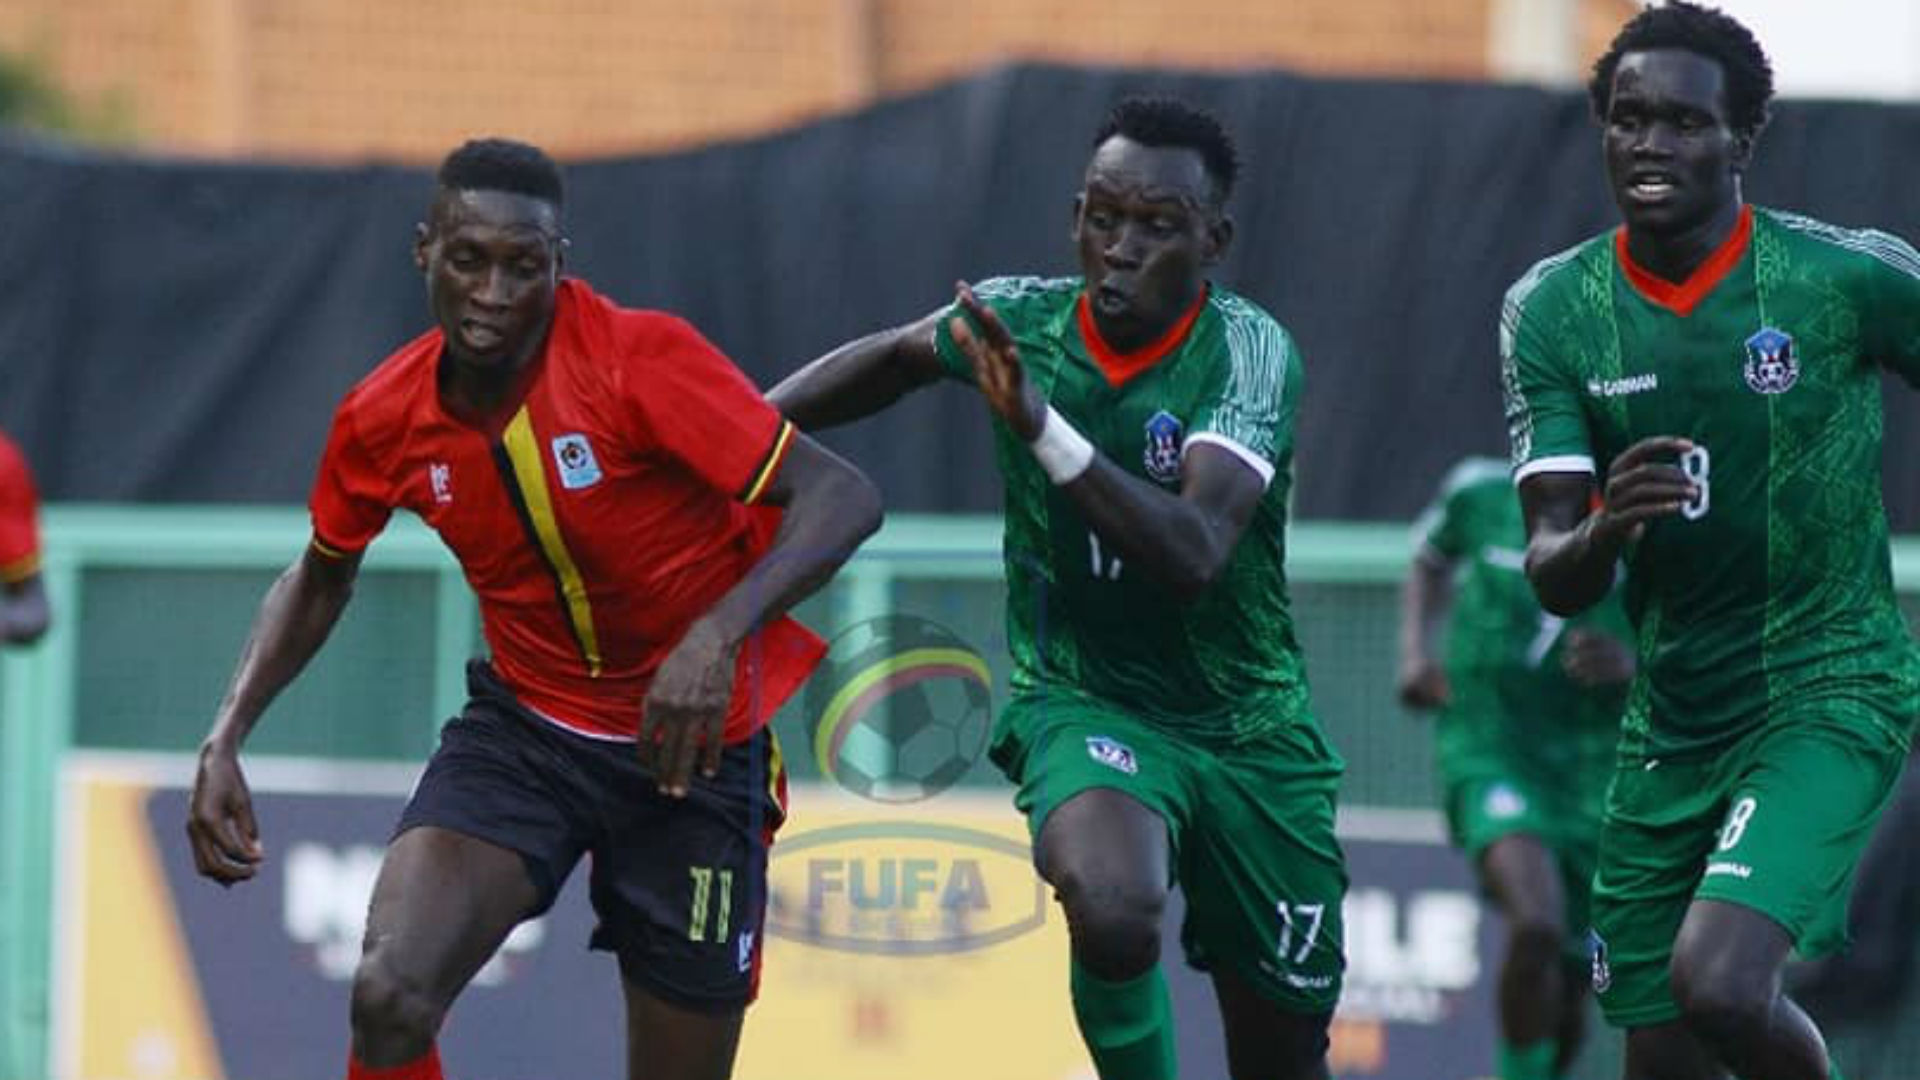 Uganda v South Sudan Match Report, 12/11/2020, Africa Cup of Nations Qualification